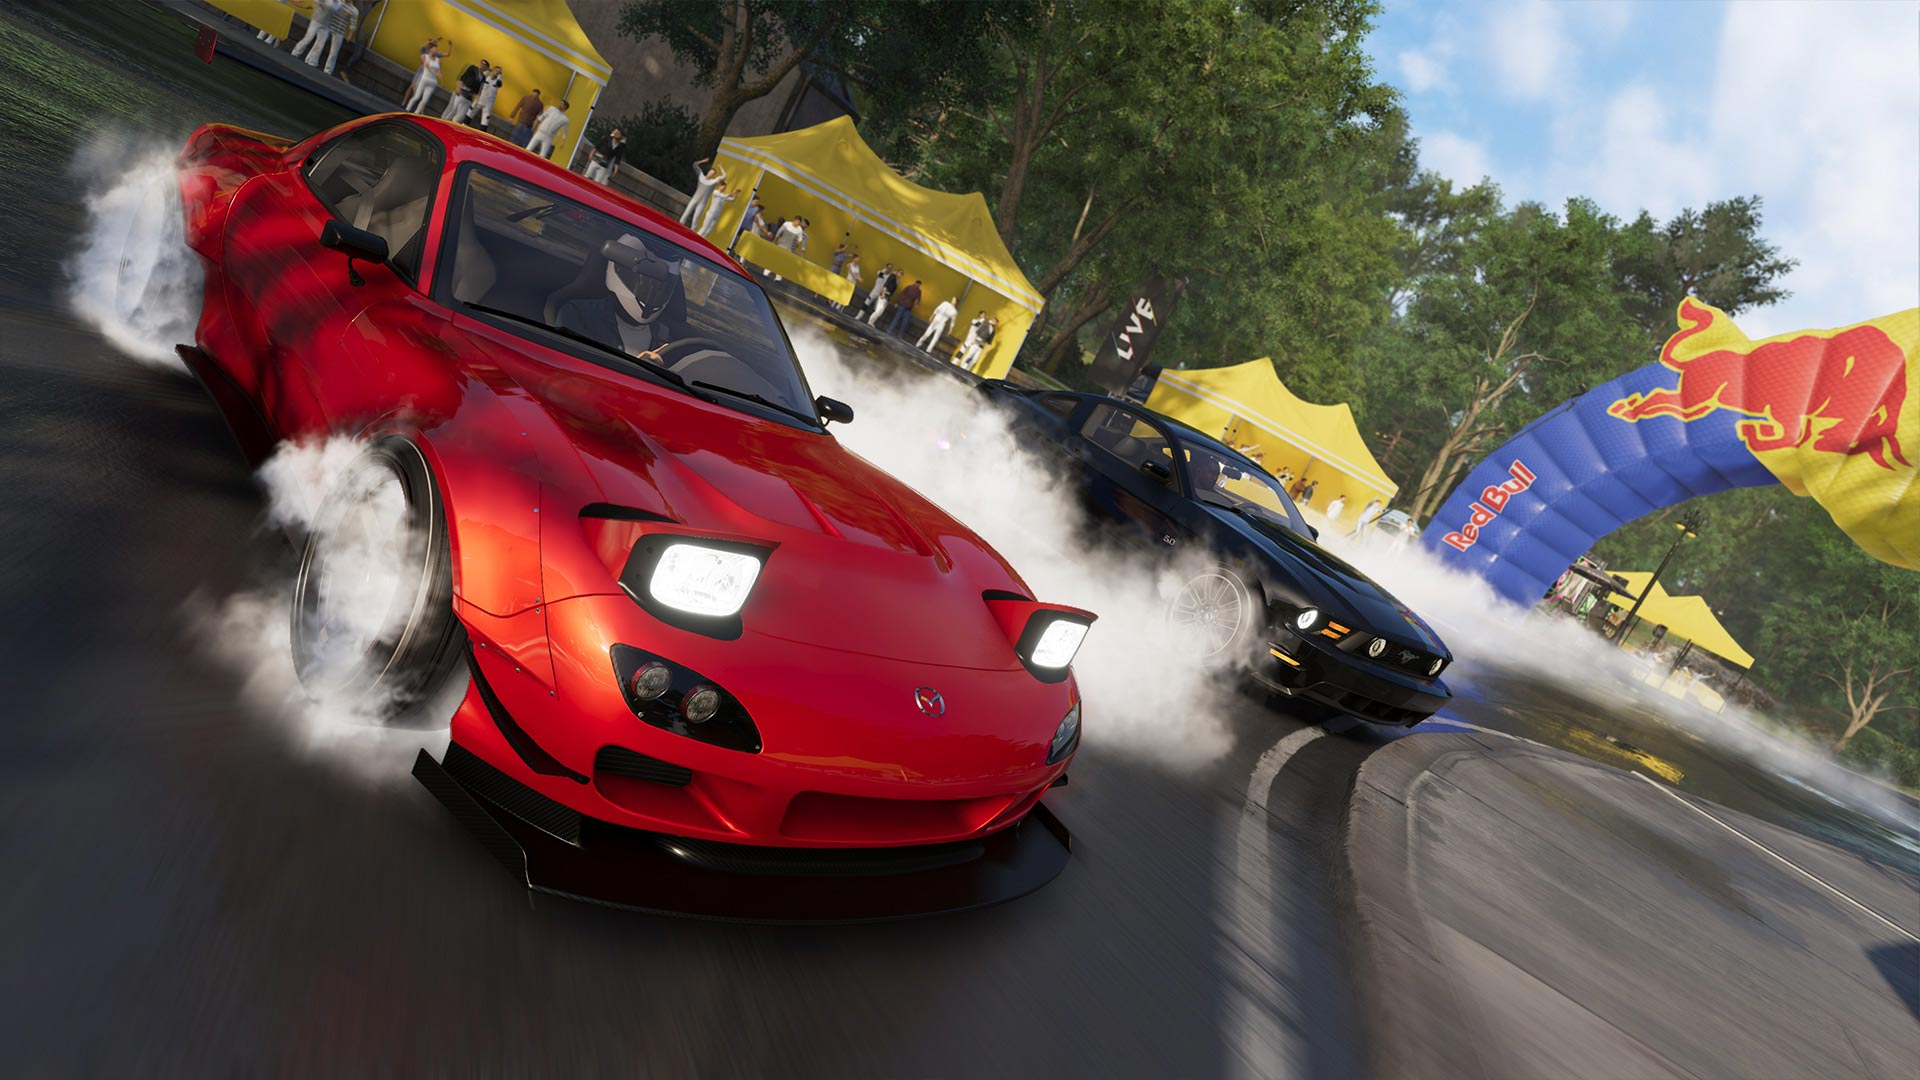 The Crew 2 closed beta goes live at the end of the month